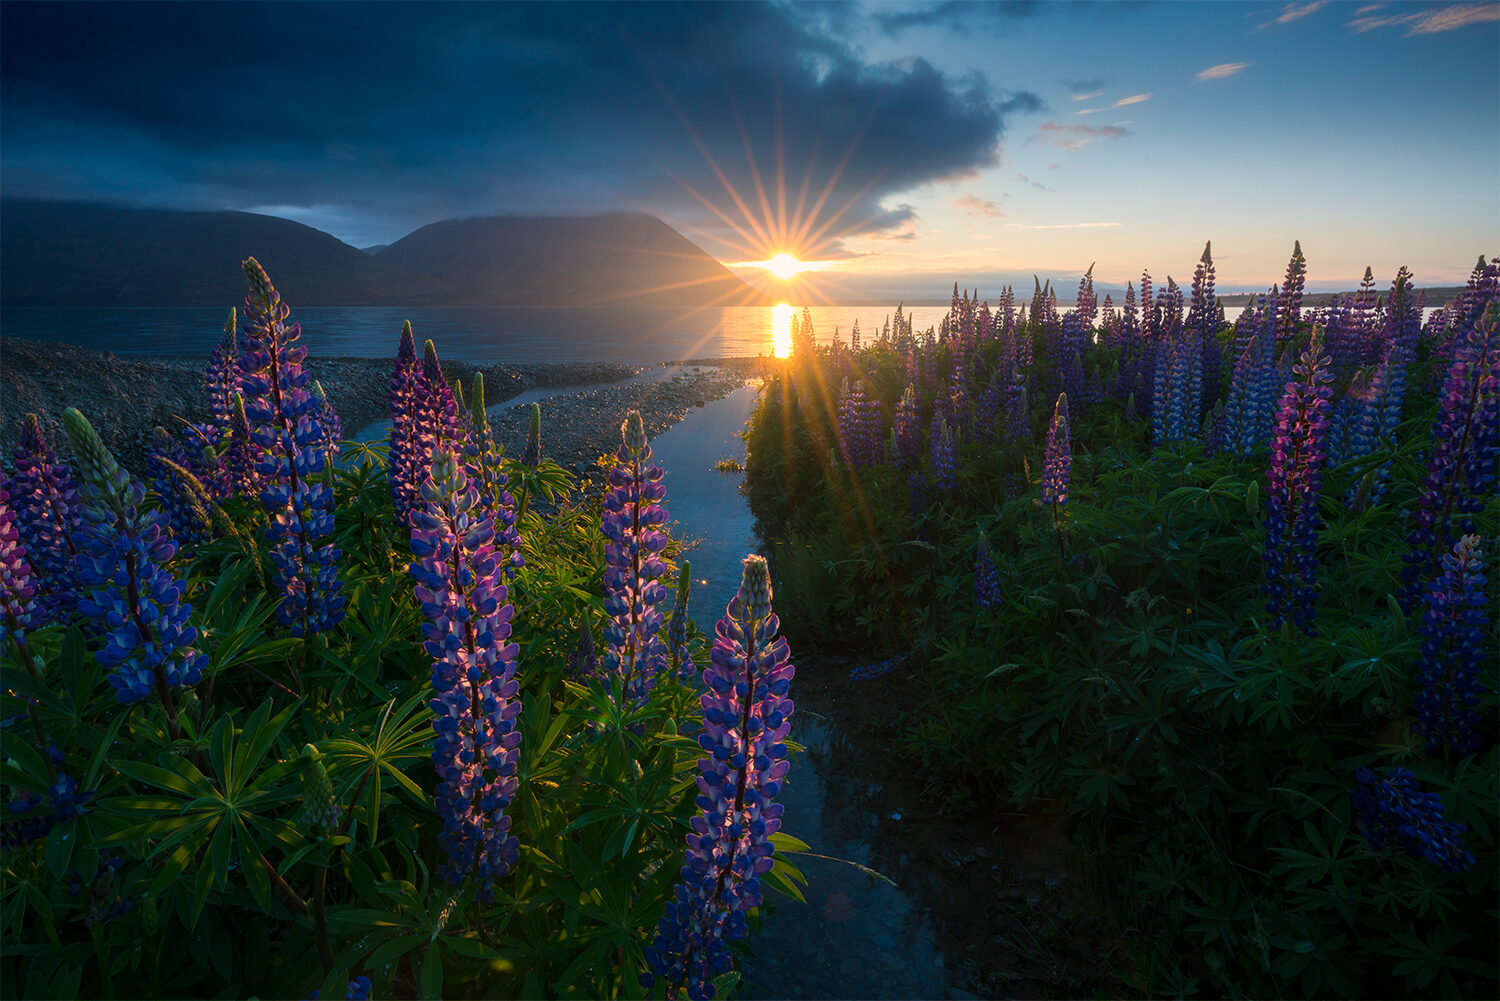 Lupin flowers by the lake, New Zealand